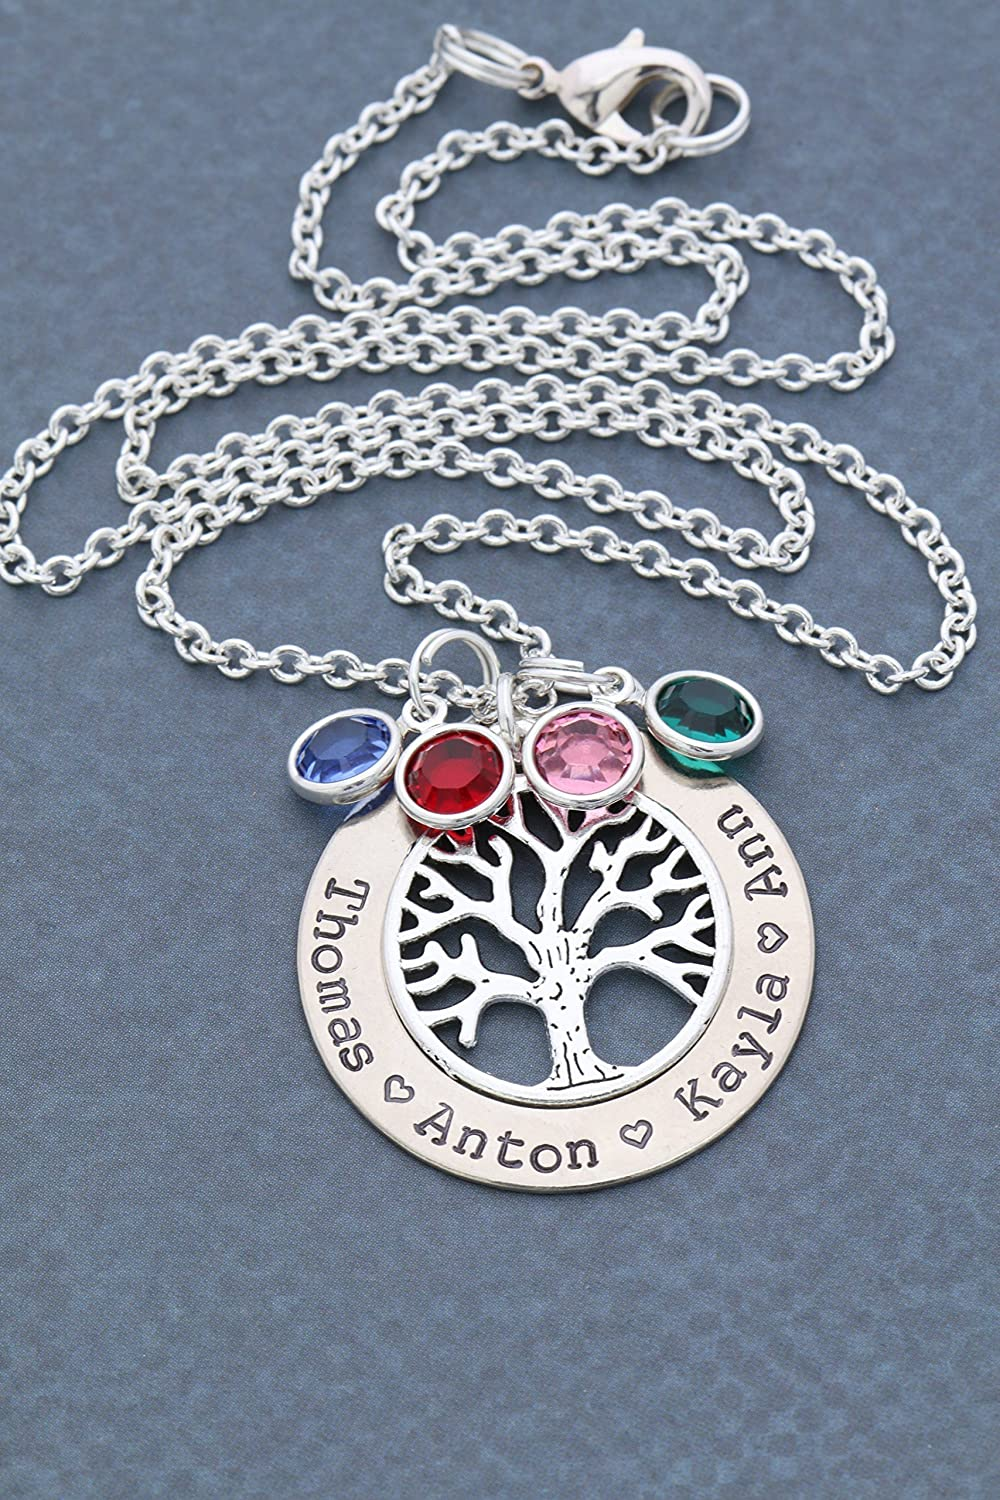 Silver Family Tree Necklace - DII ABC - Grandma Gift - Personalized Children's Name Mother Birthstone Jewelry - 1.25 Inch Washer Swarovski Crystals